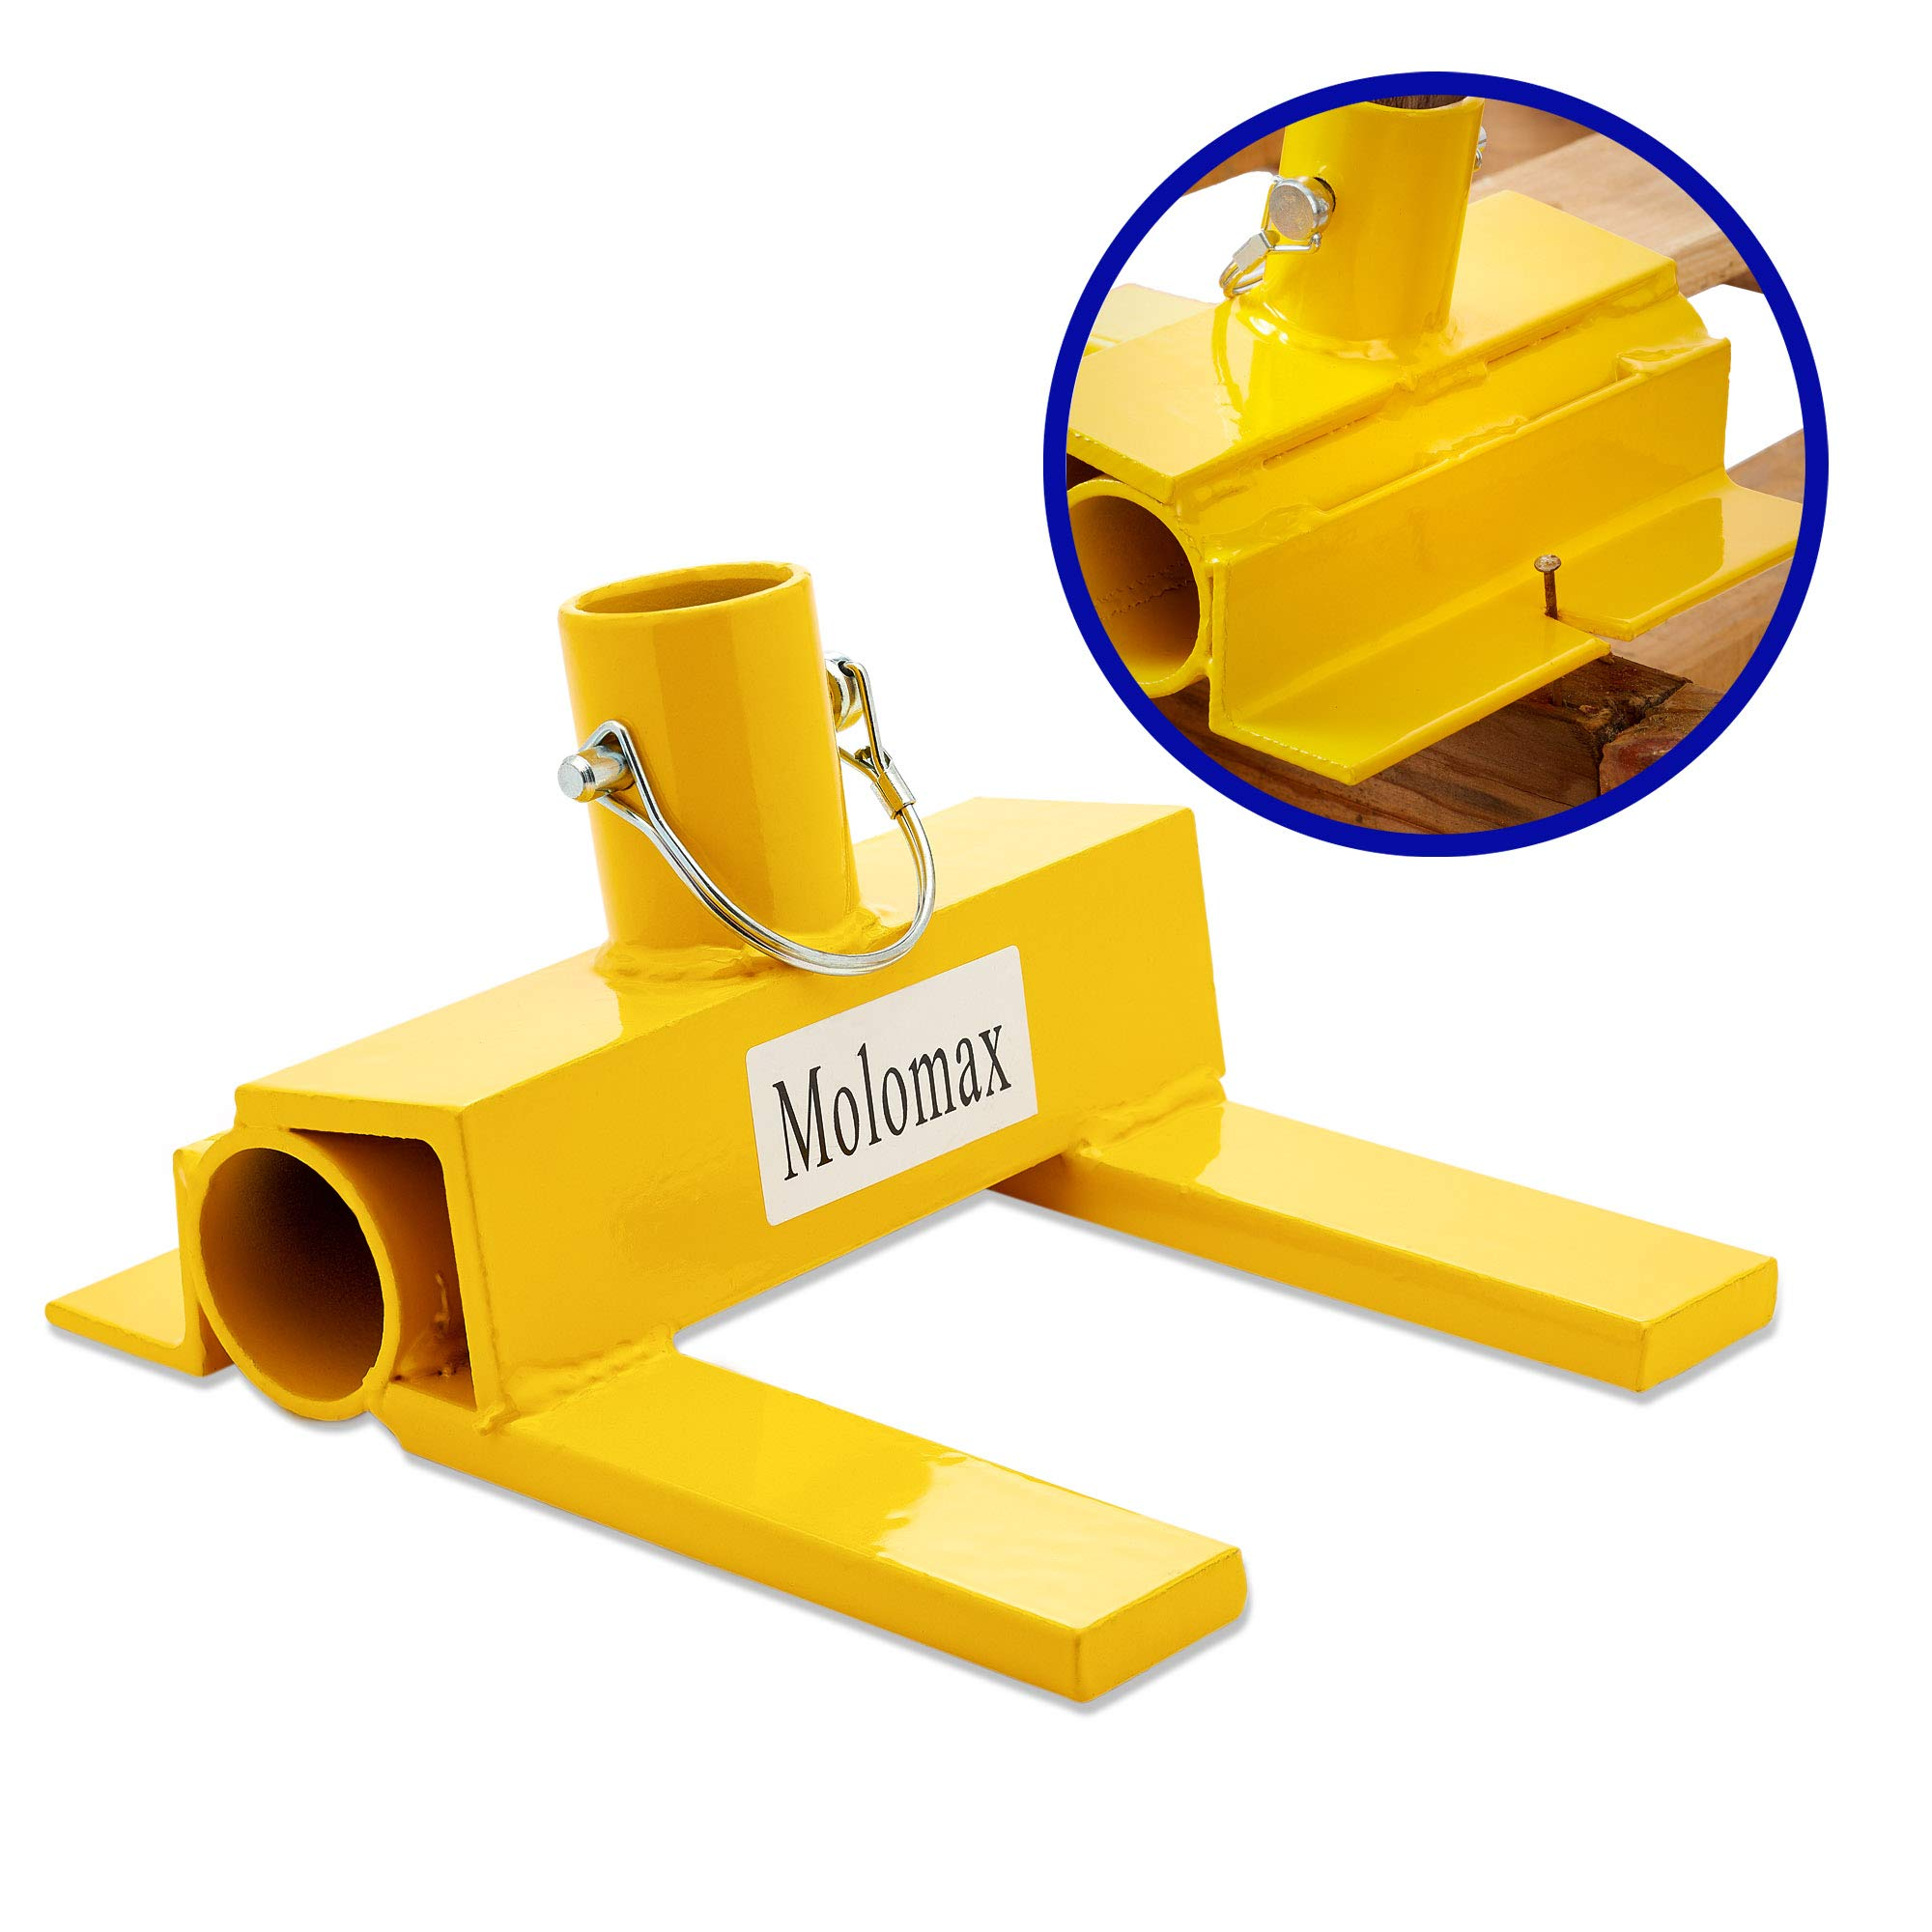 Pallet Buster with Nail Removal | Deck Wrecker - Best Wrecking Bar for Breaking Pallets - Steel Head - 2 Secure Locking Pins - Yellow - Molomax